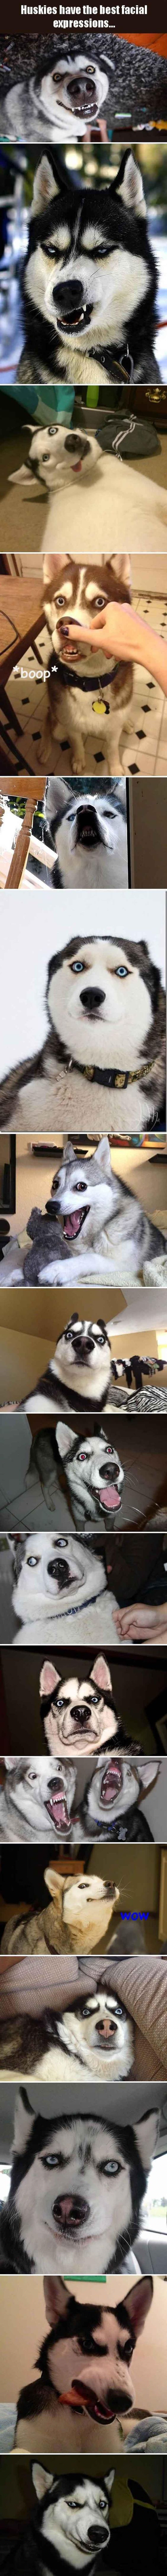 """7.19.16 - Huskies Have the Best Facial Expressions Hope you're doing well.From your friends at phoenix dog in home dog training""""k9katelynn"""" see more about Scottsdale dog training at k9katelynn.com! Pinterest with over 20,600 followers! Google plus with over 165,000 views! You tube with over 500 videos and 60,000 views!! LinkedIn over 9,200 associates! Proudly Serving the valley for 11 plus yea"""